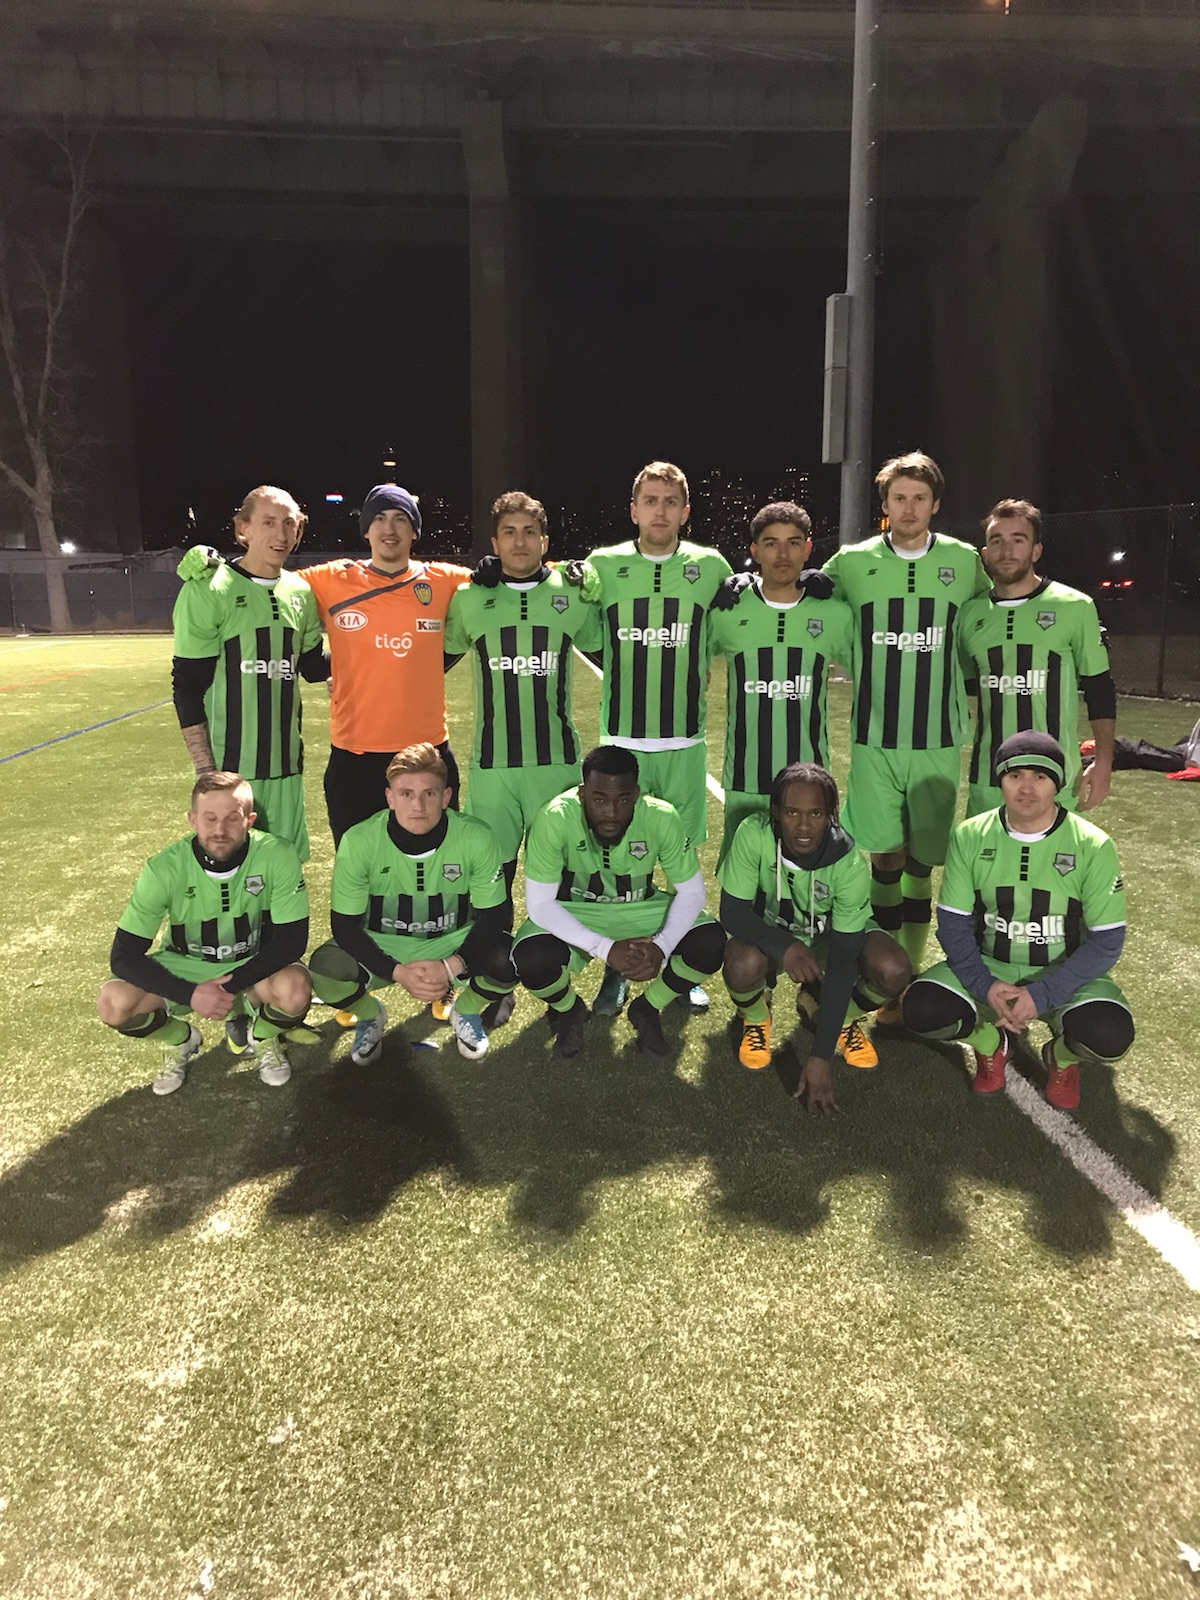 Cedar Stars return from winter break with a 3-0 victory over CPR